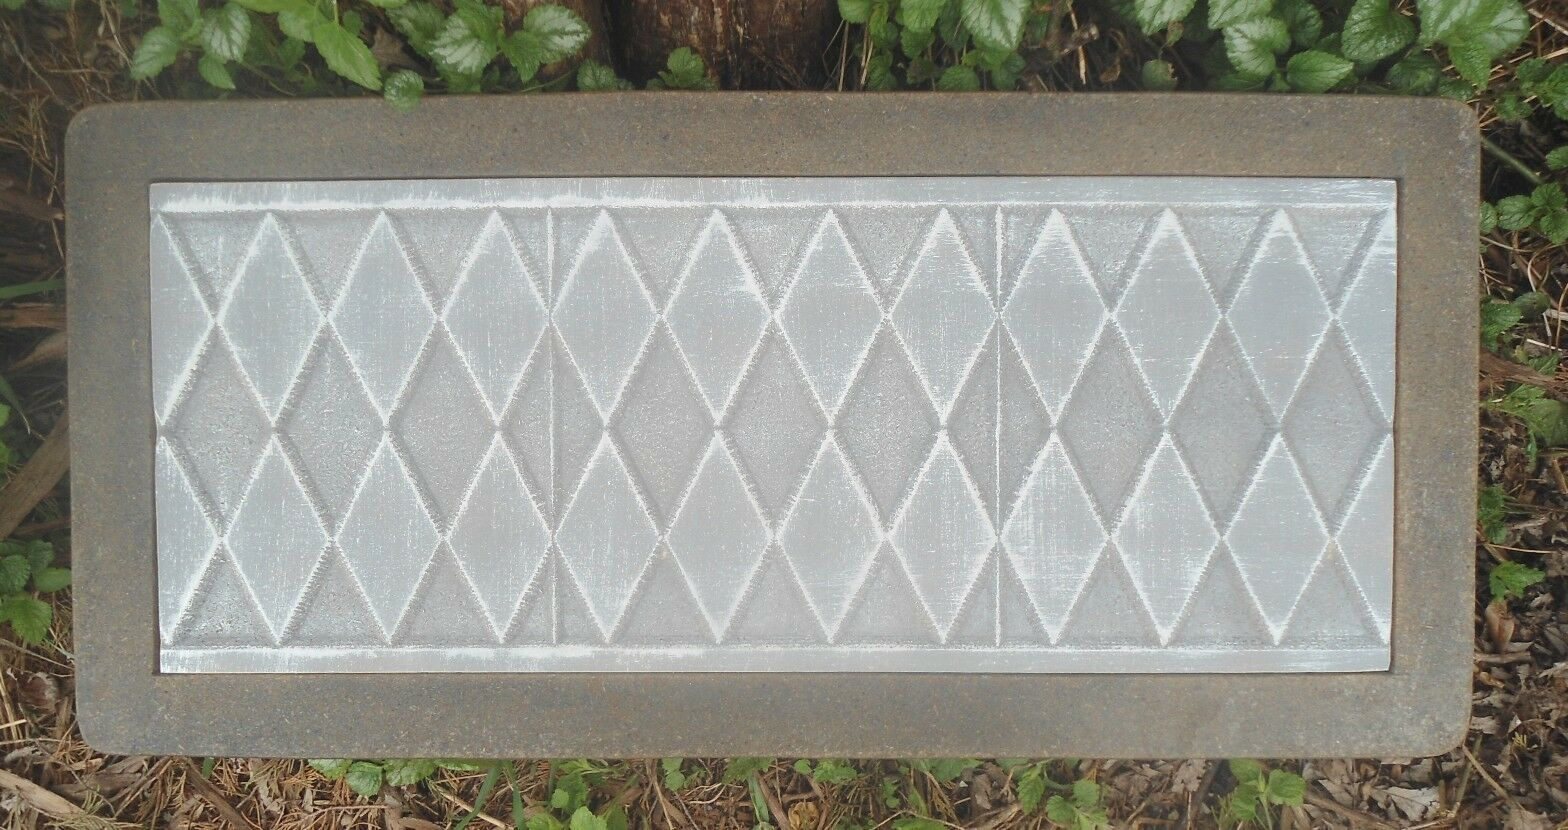 Diamond Bench Top Mold 3/16 ths Abs Plastic Concrete Mould  - $79.95